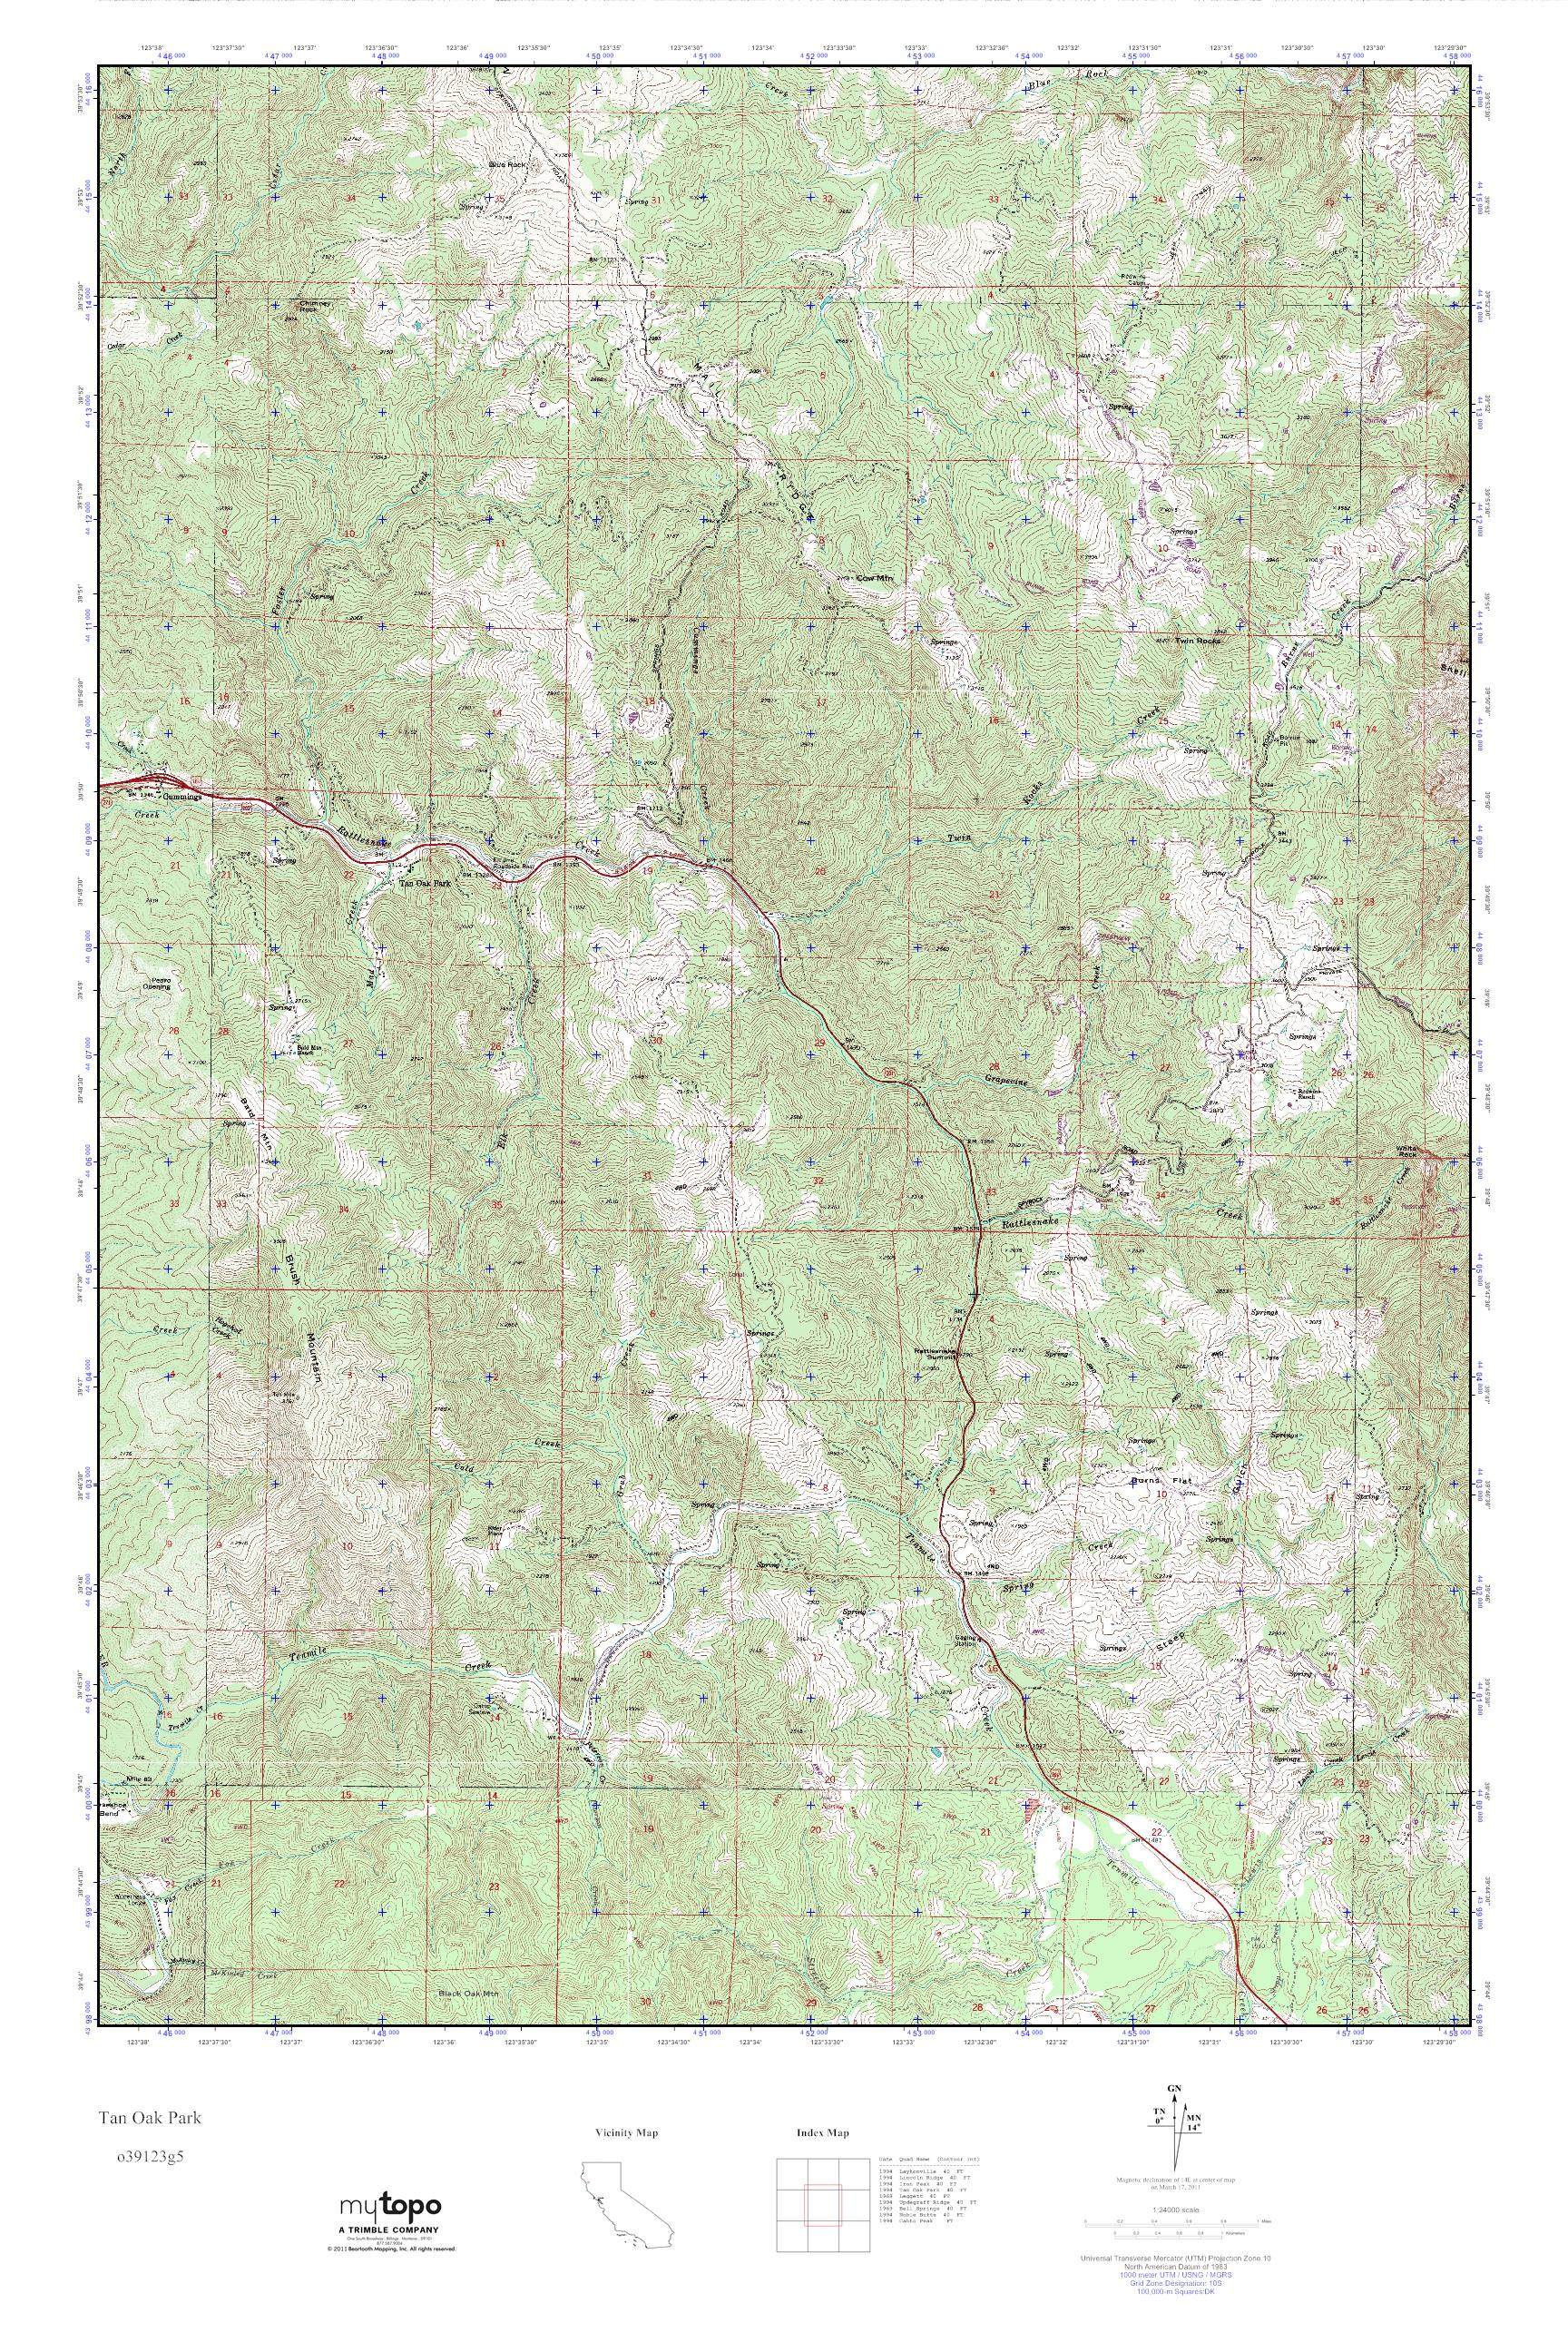 Oak Park California Map.Mytopo Tan Oak Park California Usgs Quad Topo Map